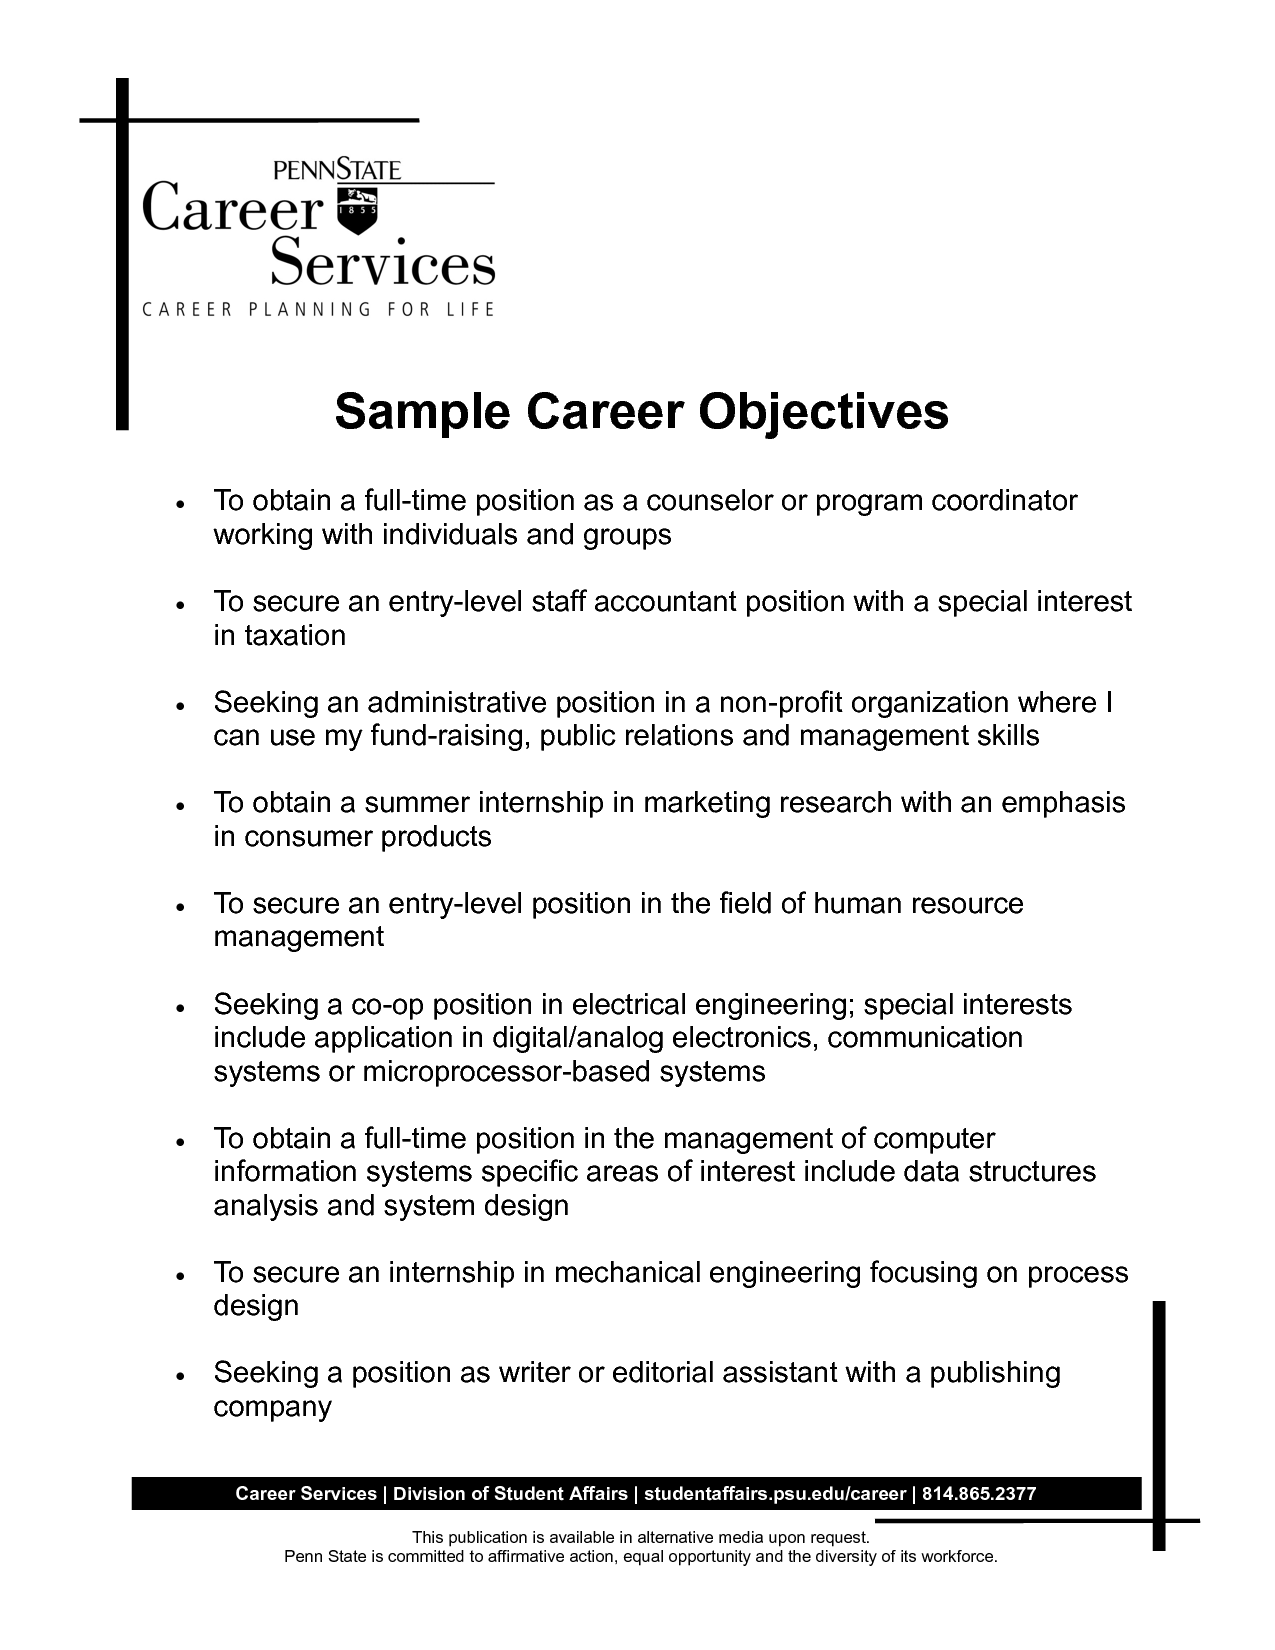 Resume Job Objective Examples Career Objective Resume Accountant  Httpwww.resumecareer .